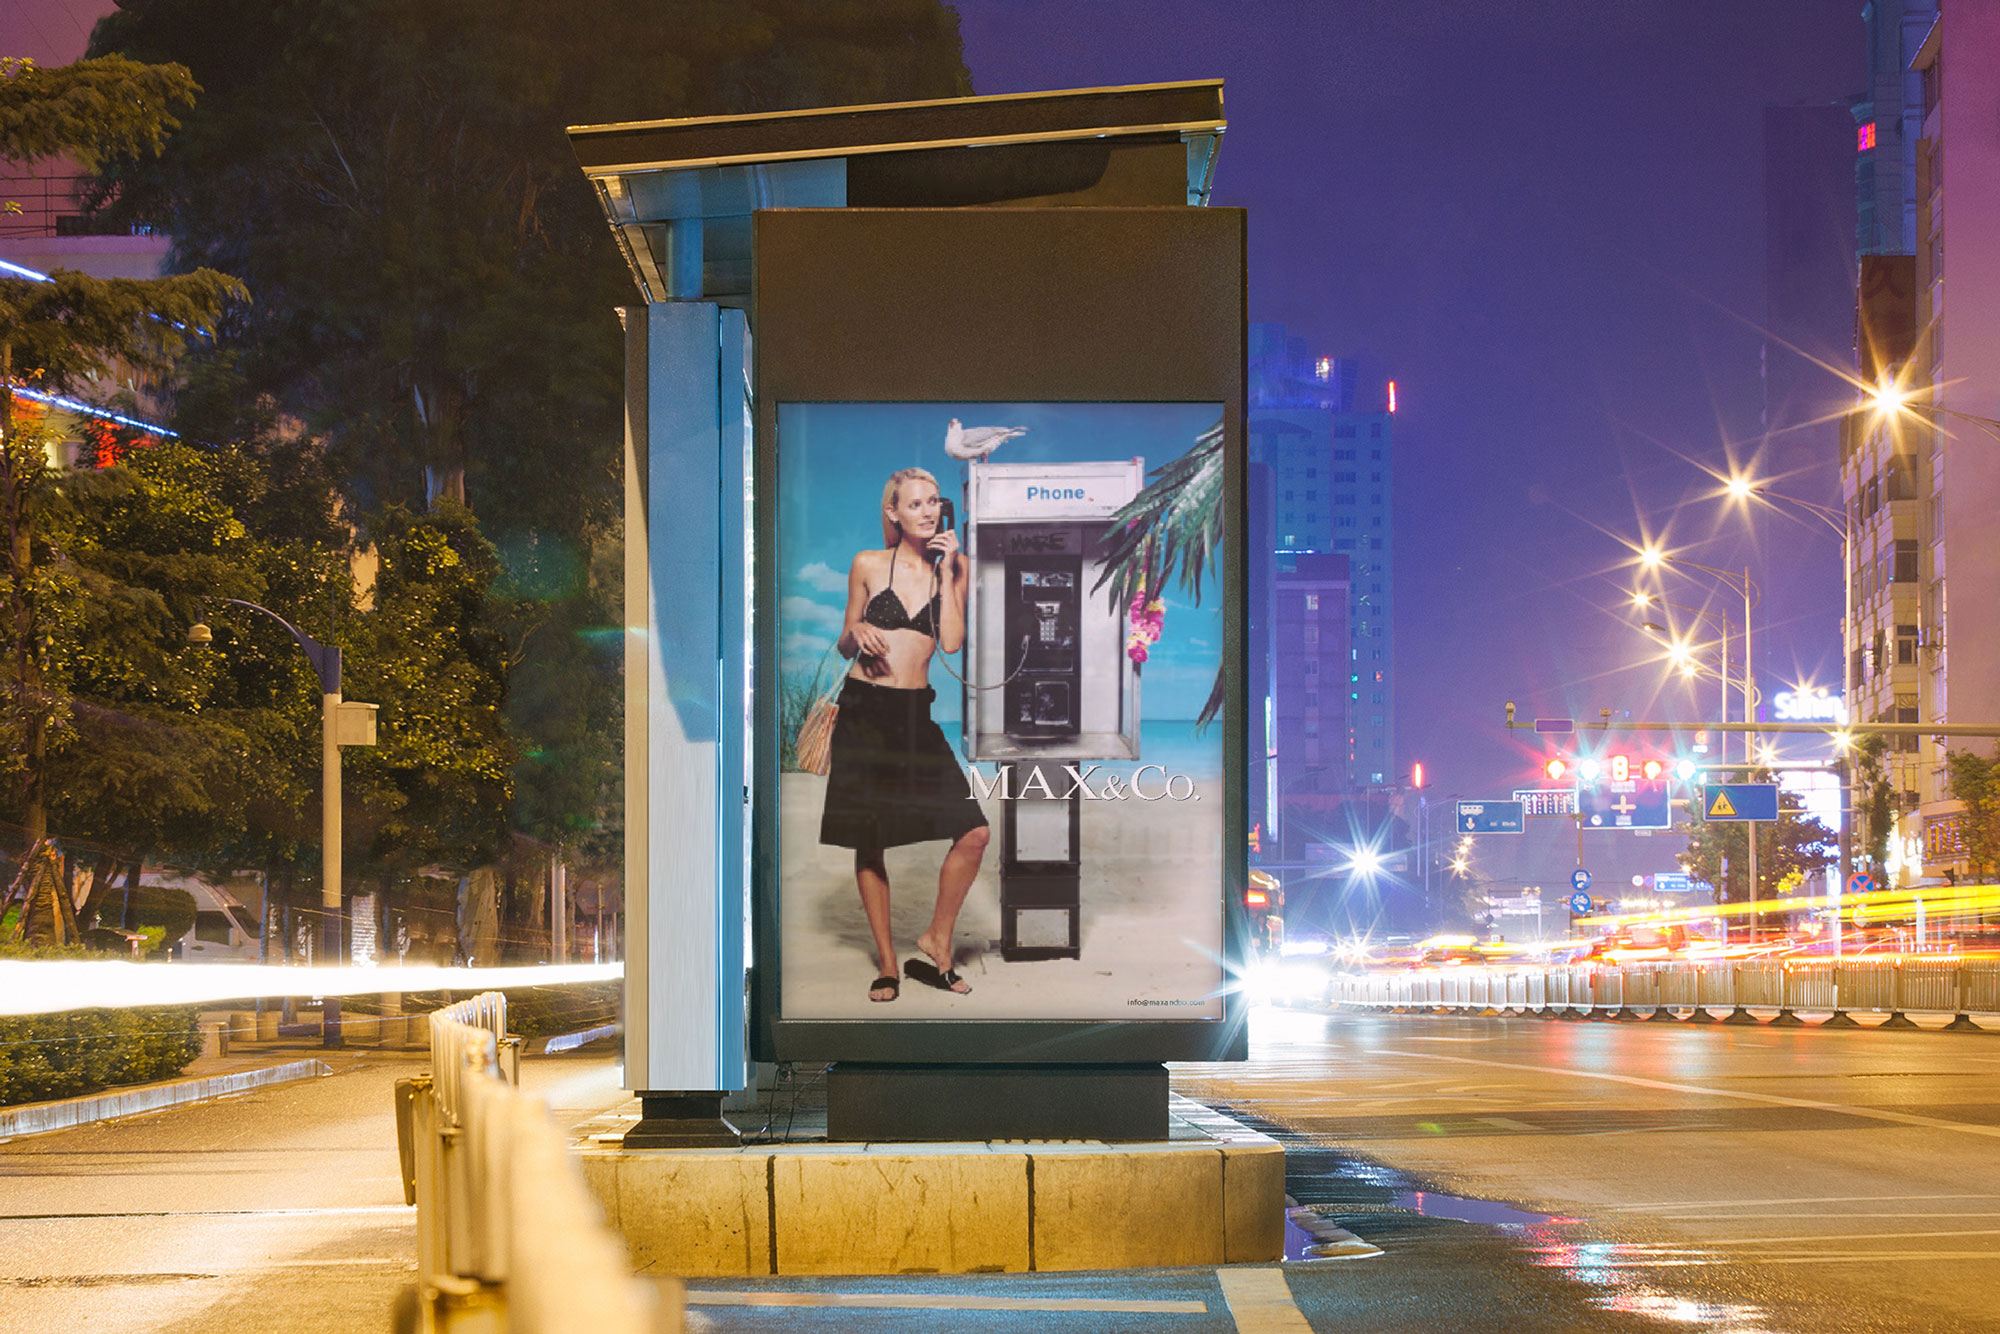 Fashion Advertising Max&co Likecube